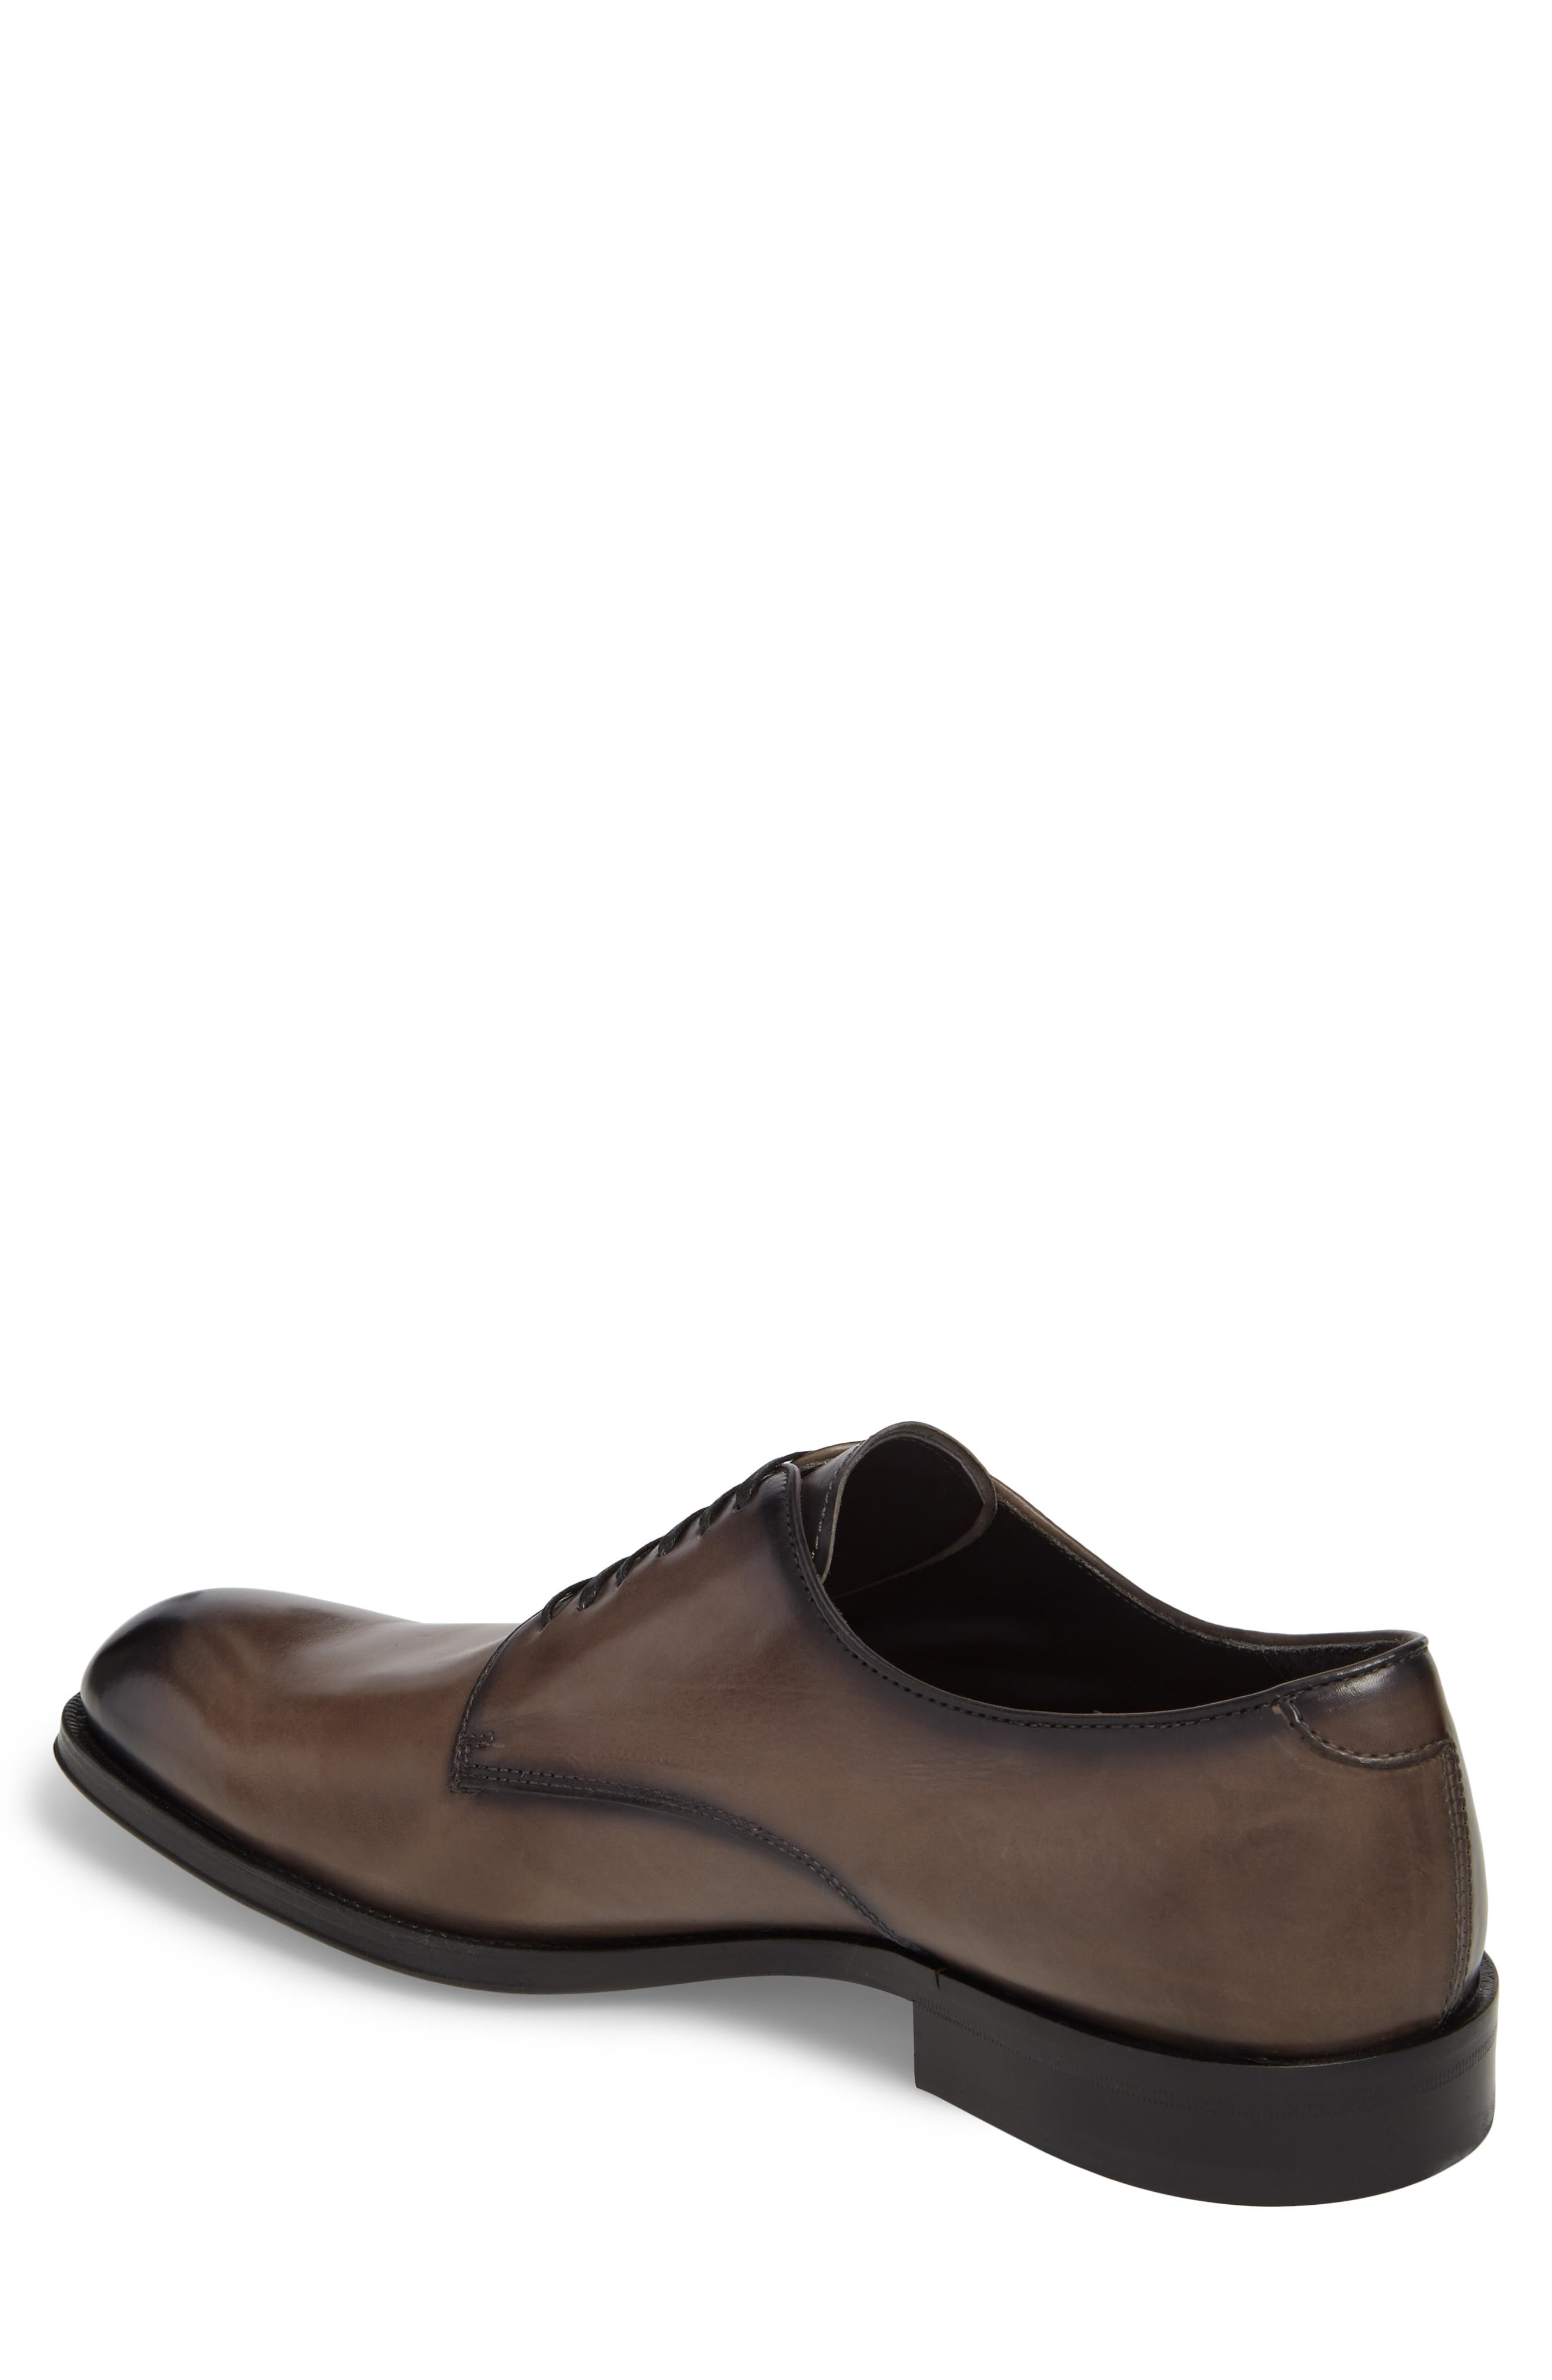 Academy Plain Toe Derby,                             Alternate thumbnail 2, color,                             GREY LEATHER